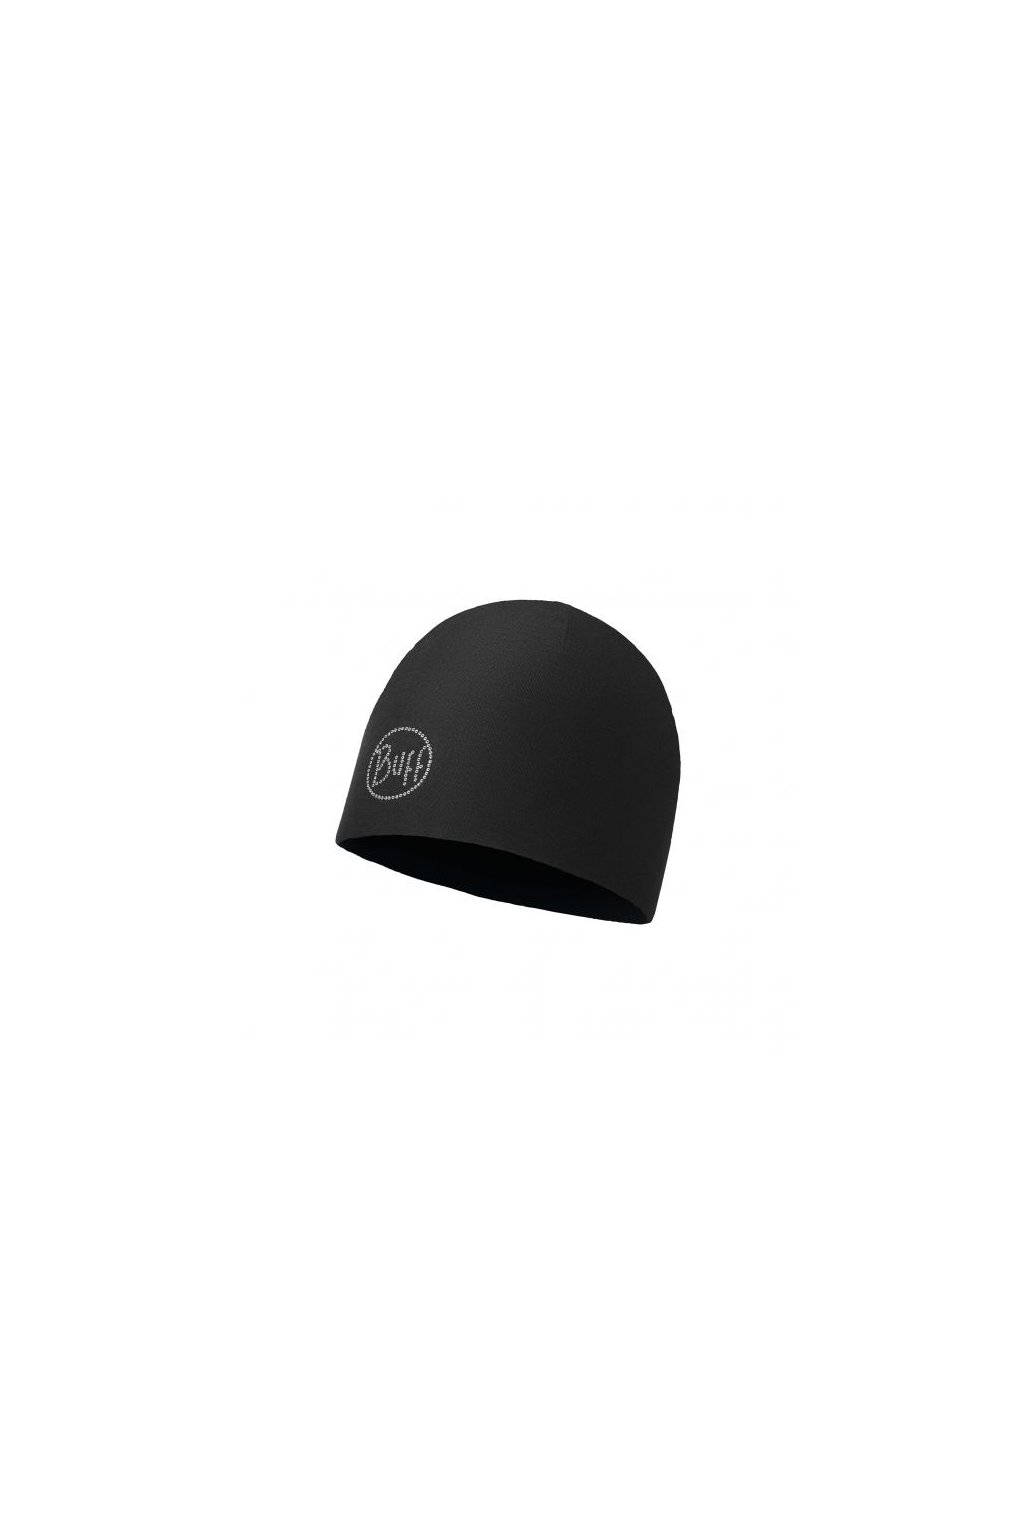 BUFF MICROFIBER REVERSIBLE HAT SOLID CHIC